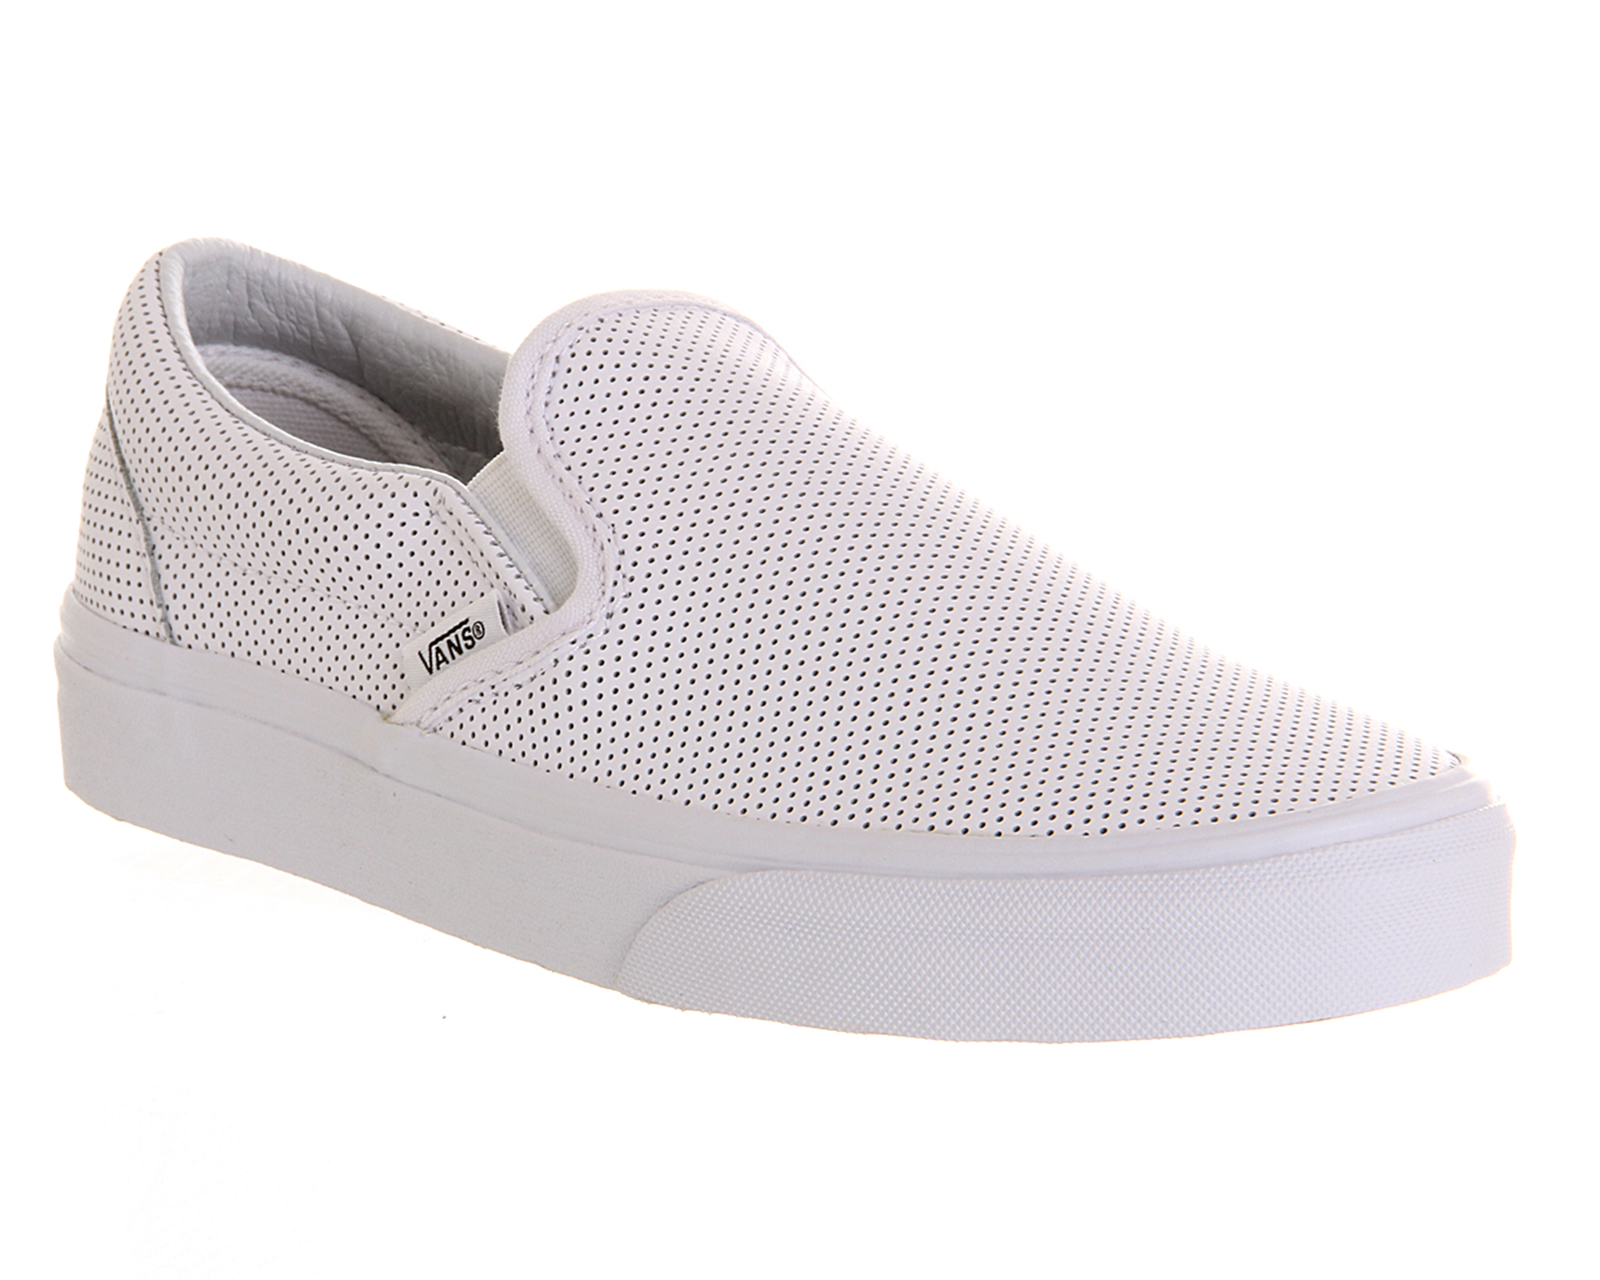 Find a great selection of Slip On Sneakers, including Men's Slip On Sneakers and Women's Slip On Sneakers today at Macy's.